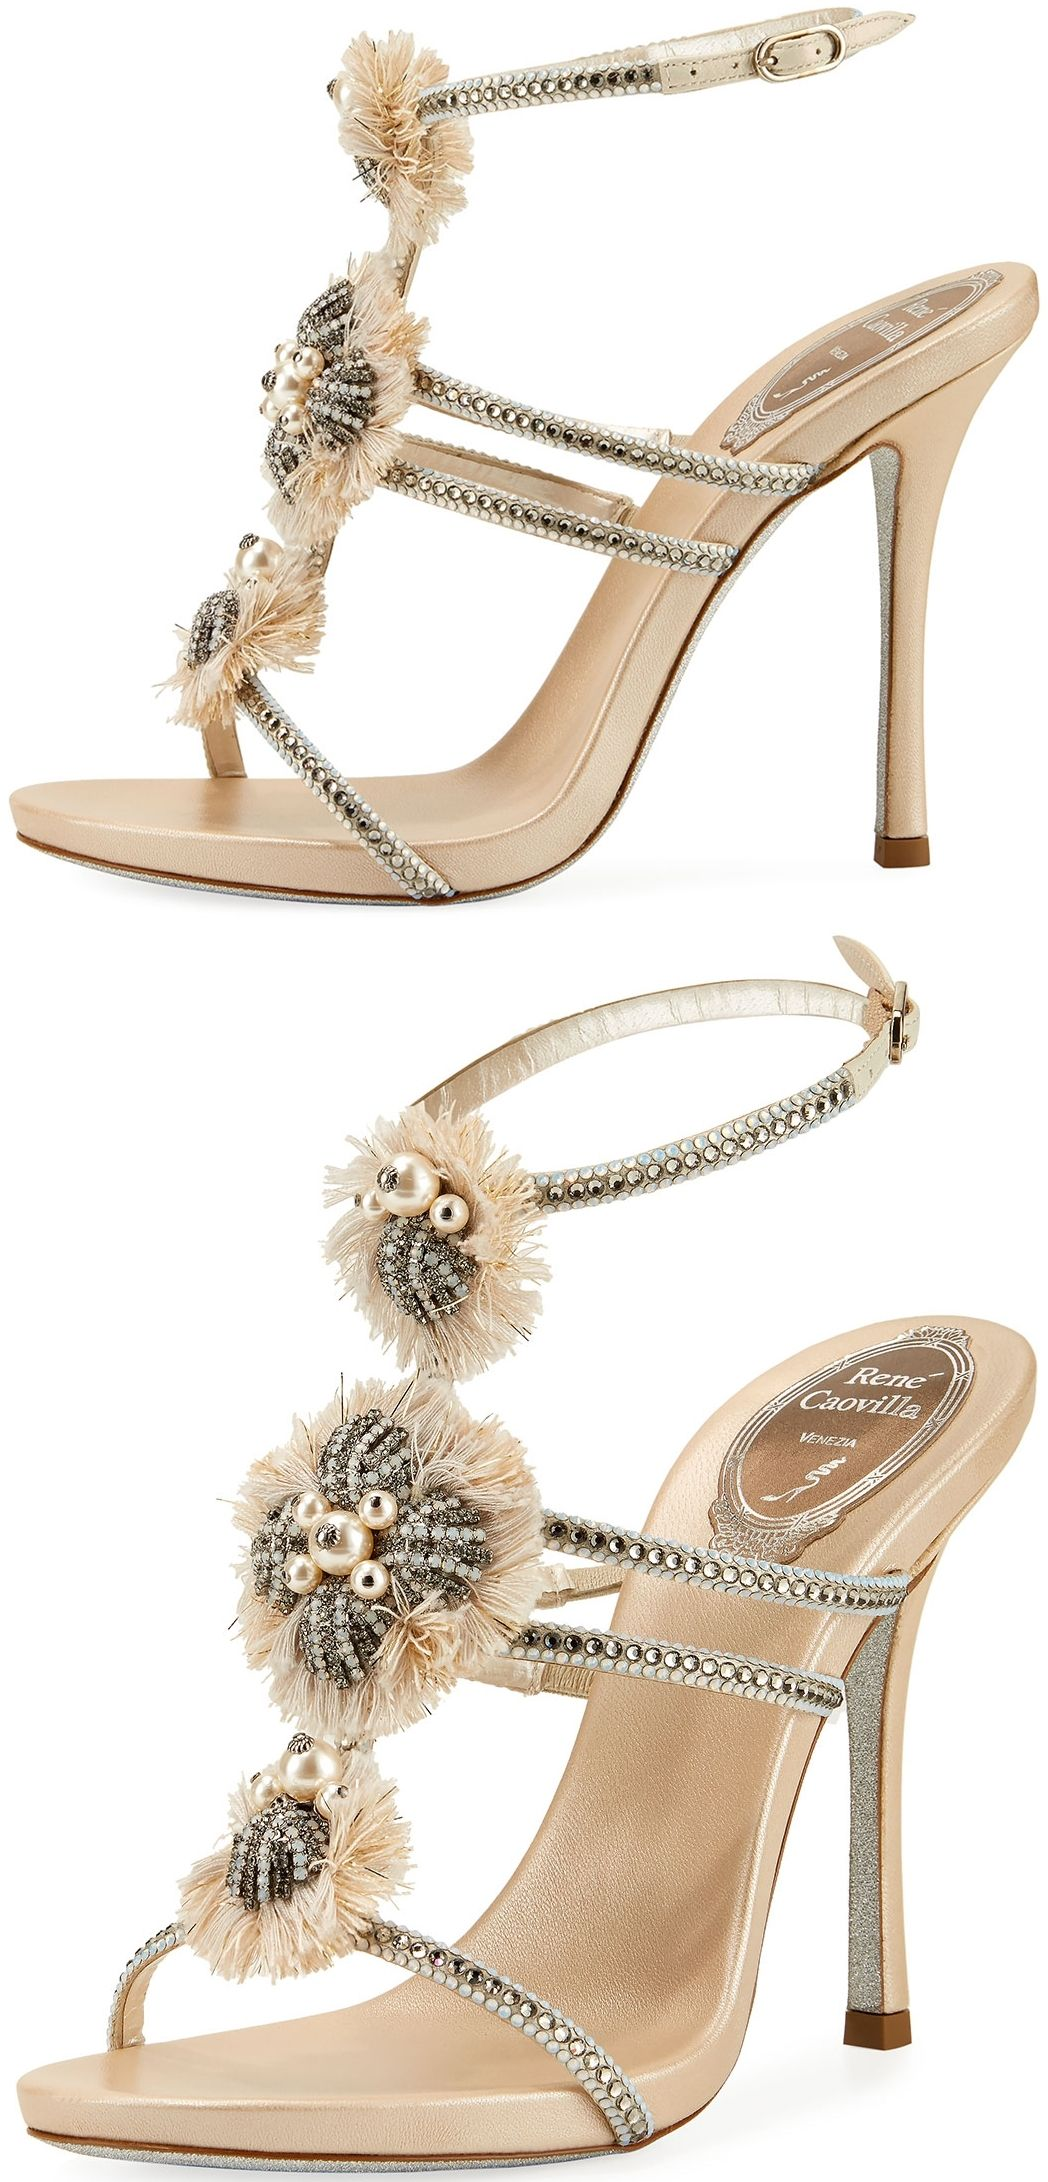 RENé CAOVILLA Designer Shoes, Satin and Crystals High Heel Sandals